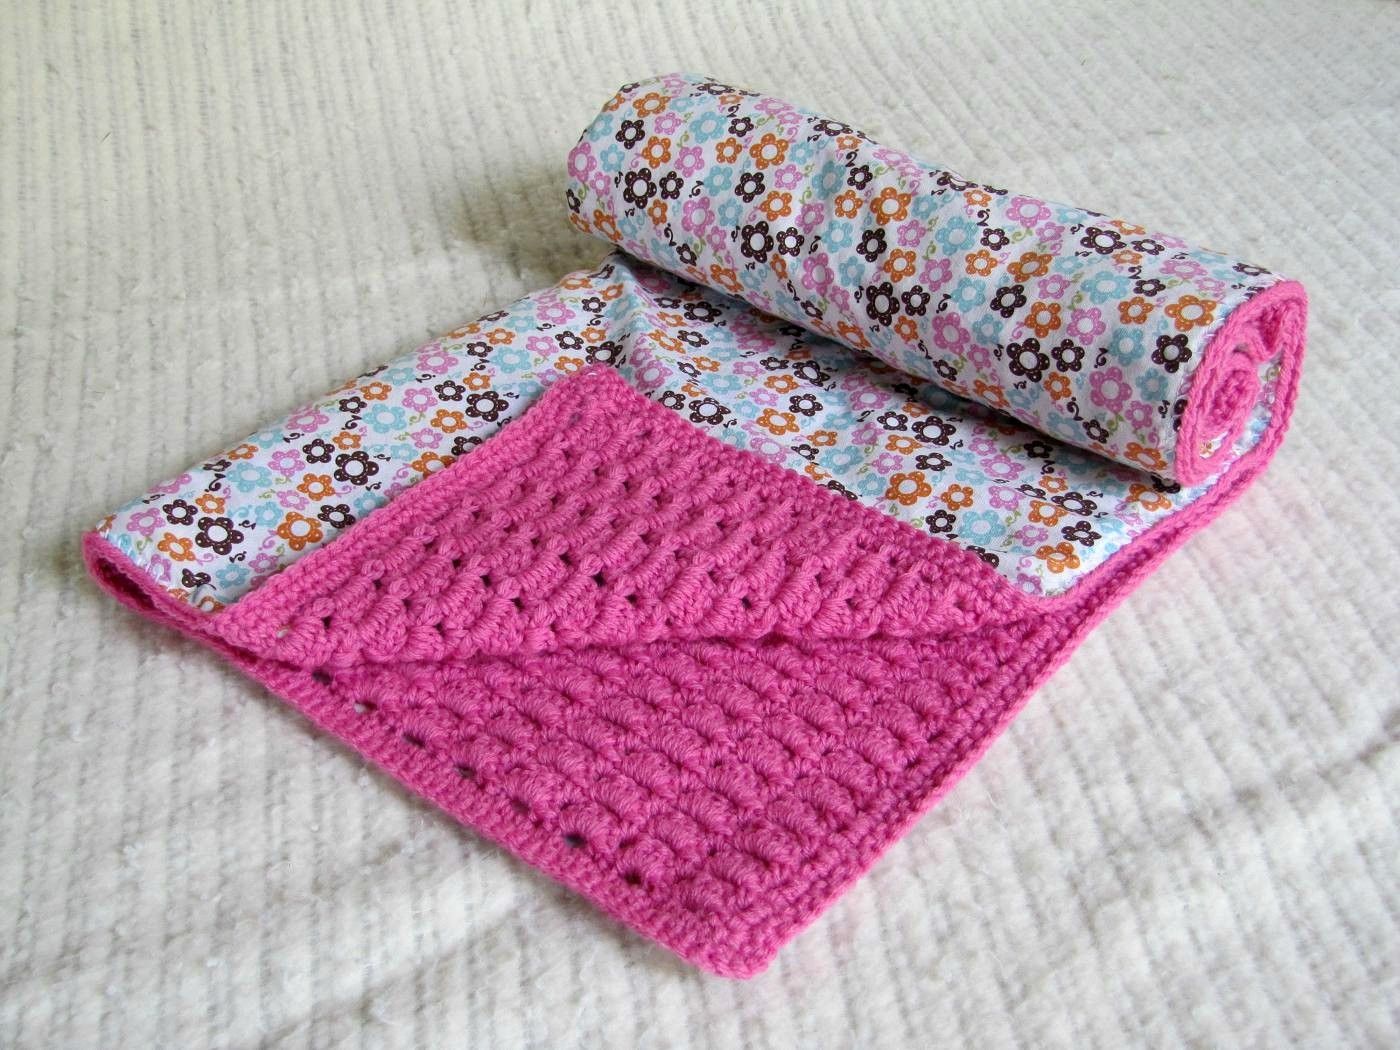 Modern Crochet Patterns Unique Baby Blanket Crochet Modern Of Adorable 44 Pictures Modern Crochet Patterns